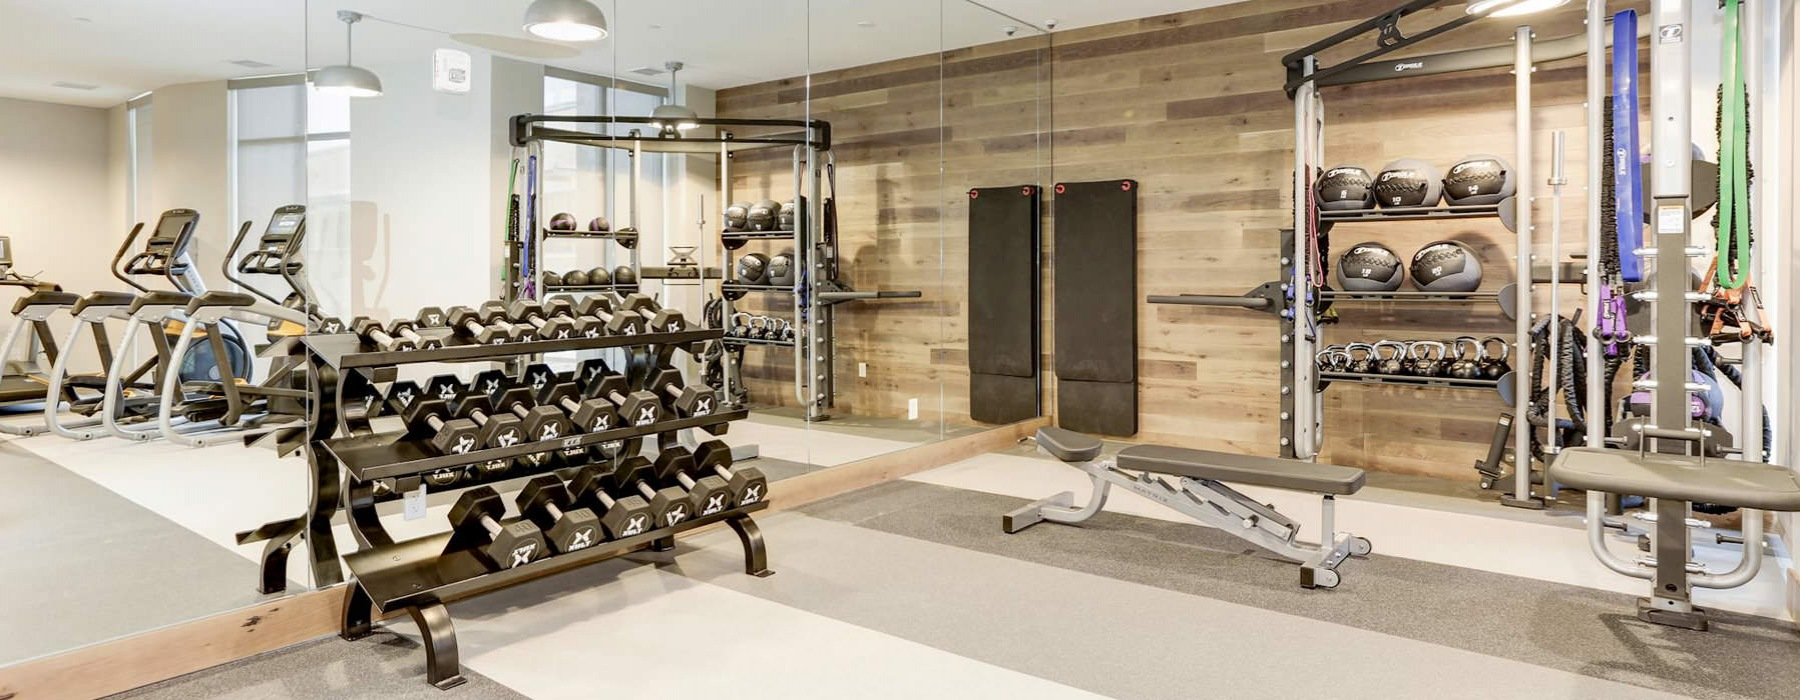 Fitness Room At Porter Street Apartments